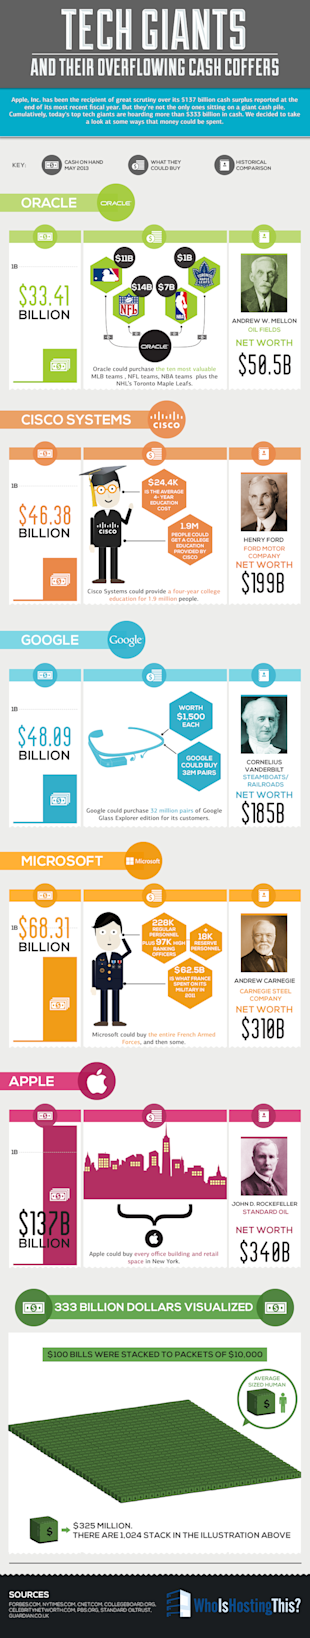 Tech Giants and Their Overflowing Cash Coffers [Infographic] image techgiants